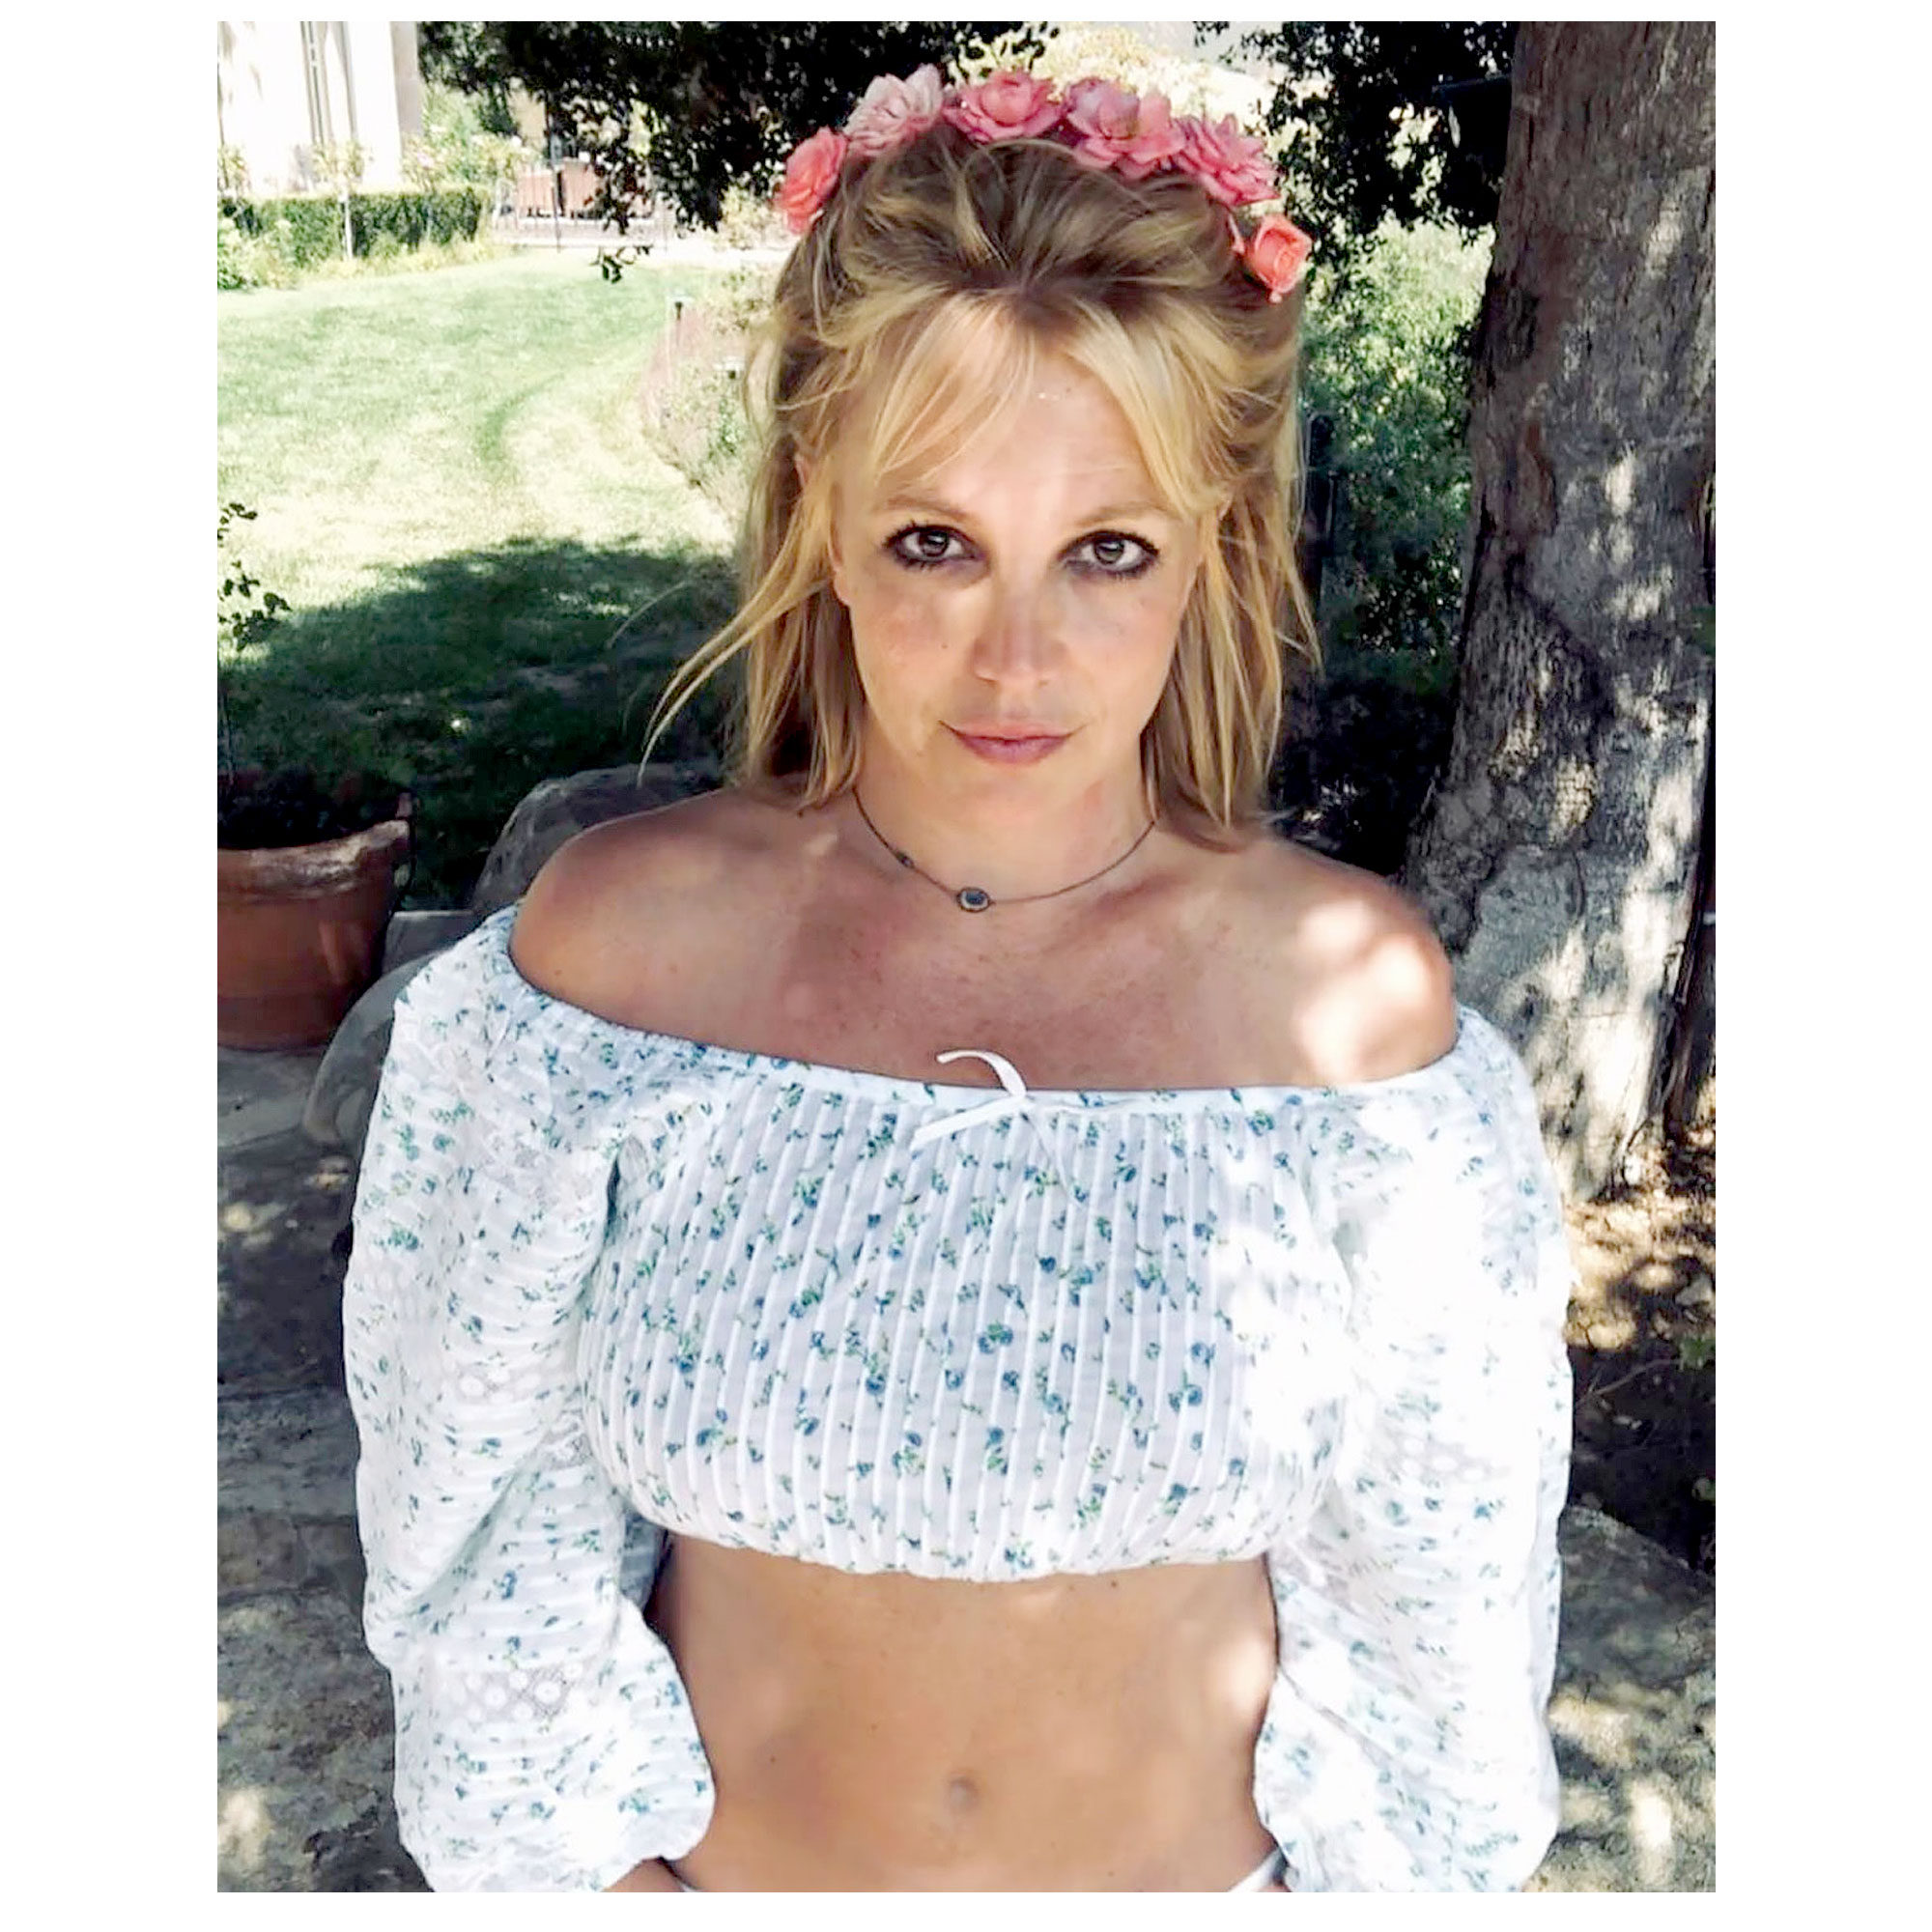 Britney Spears Is Learning Be Normal Person Amid Conservatorship Drama